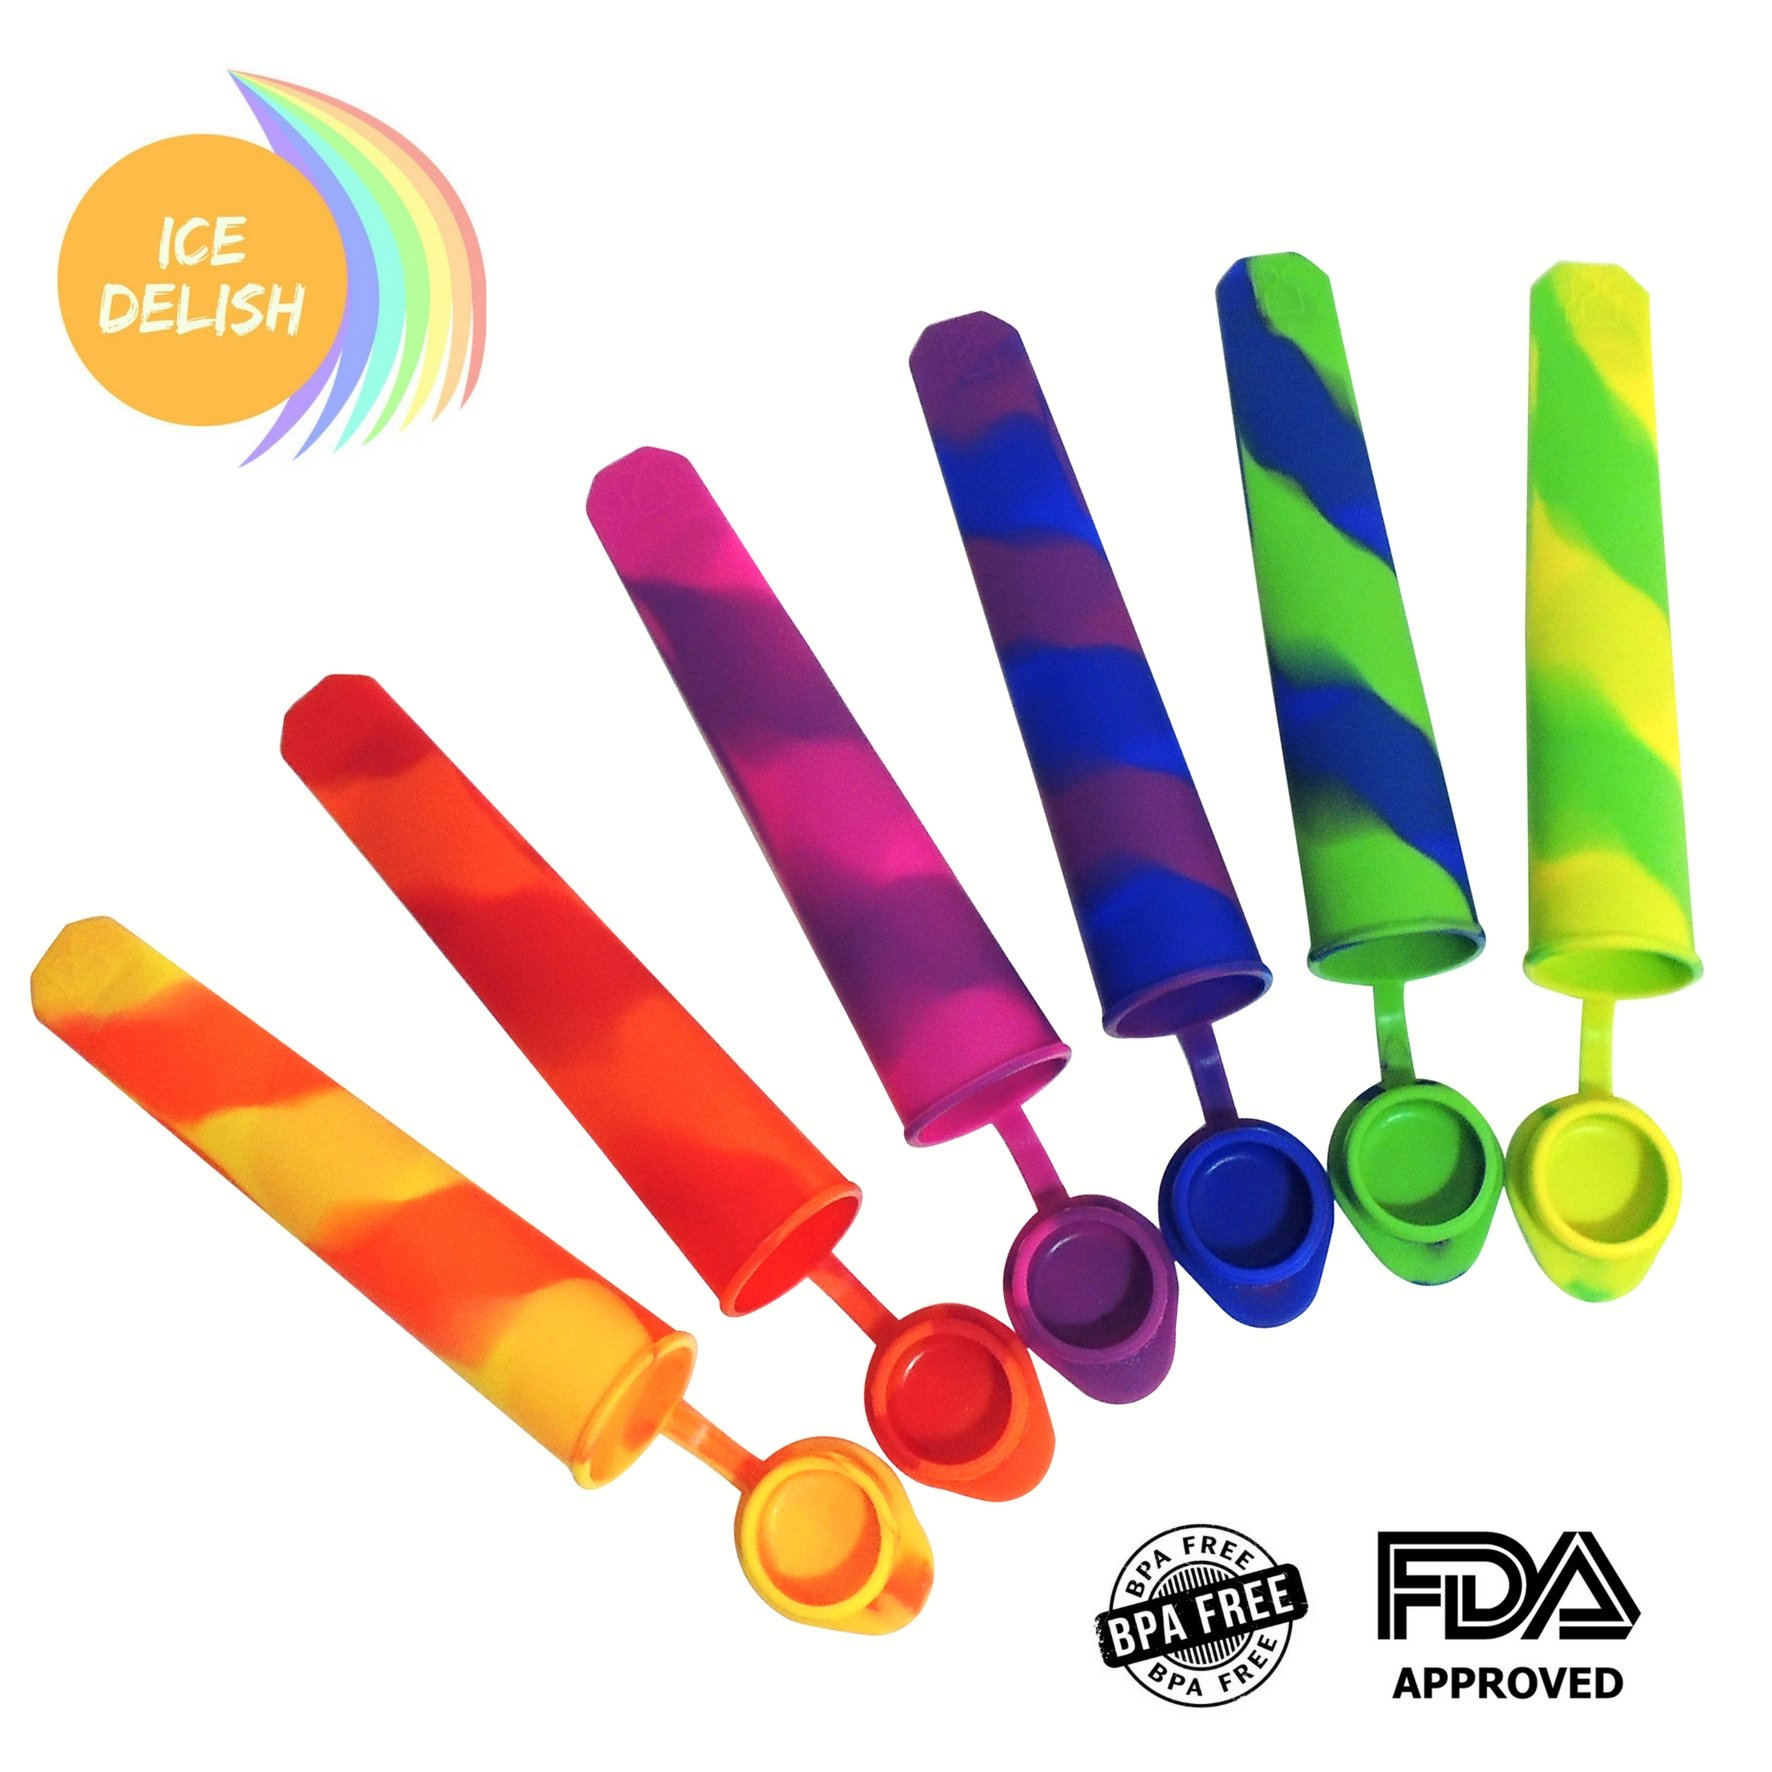 """ICE DELISH 6 pack Silicone Popsicle Molds - Fun Rainbow Colors - Make Healthy Desserts for the Family, or """"Adult Beverage"""" Ice Pops!"""